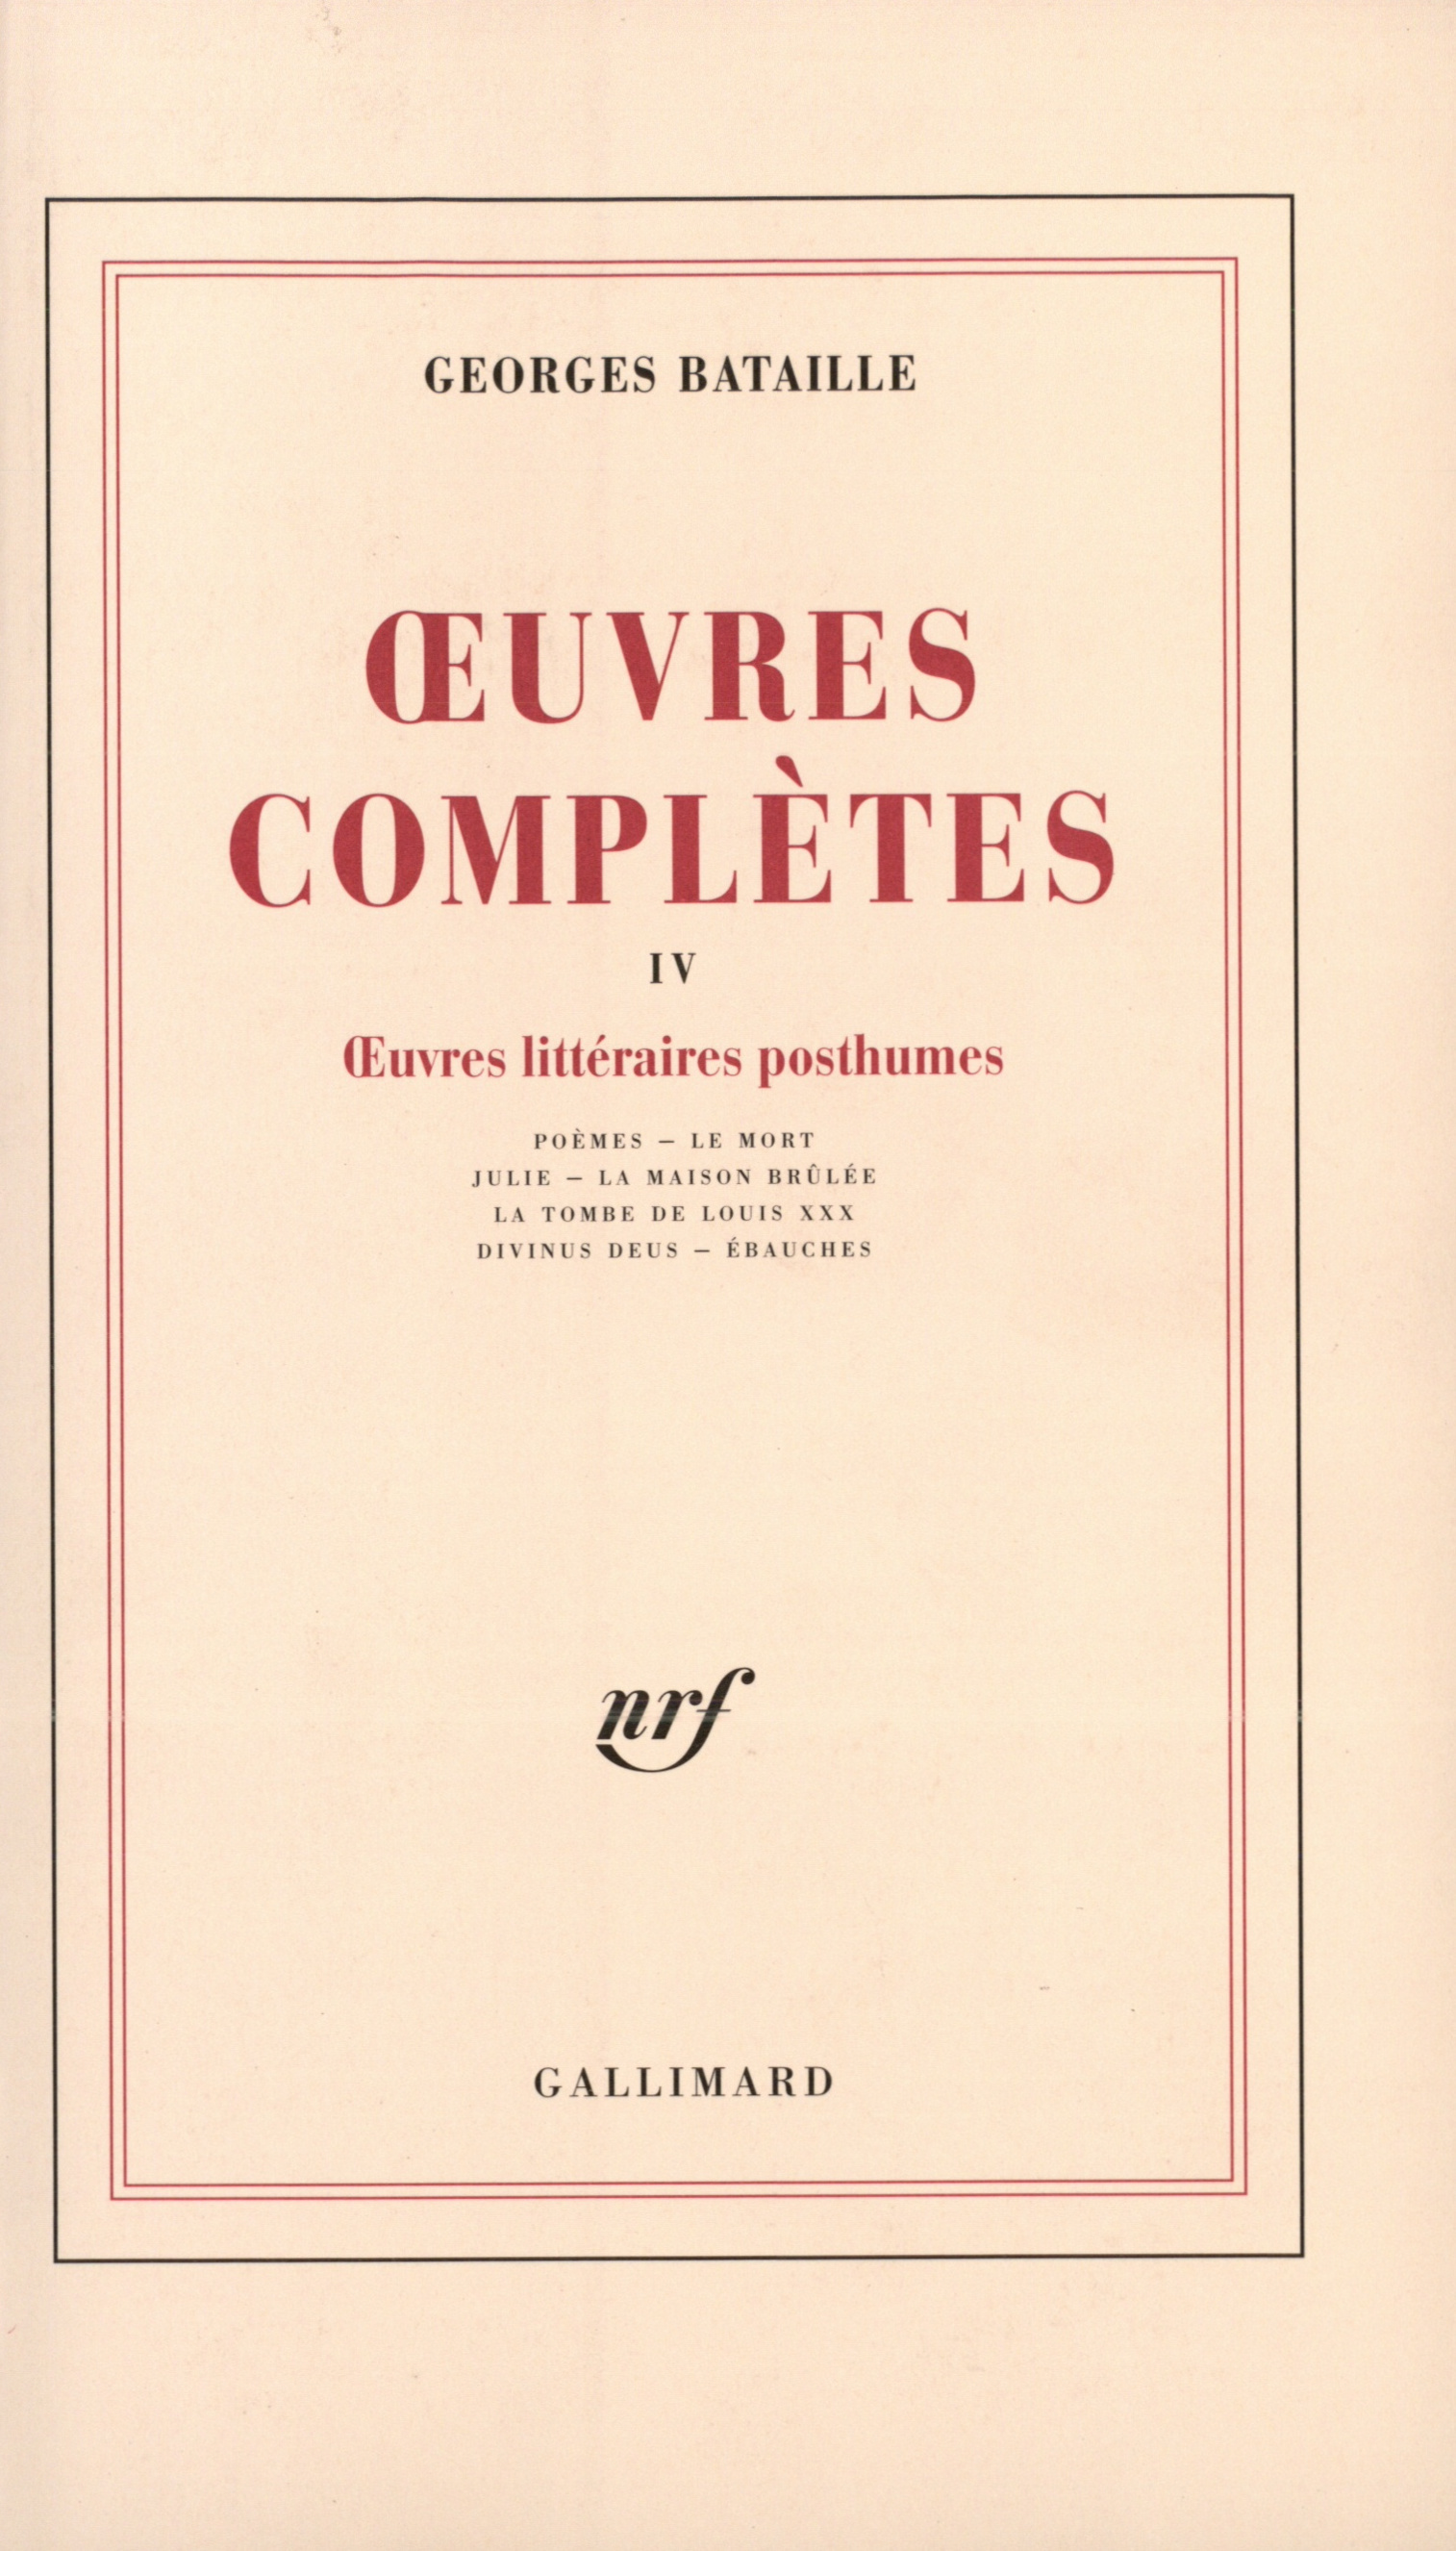 OEUVRES COMPLETES (TOME 4)